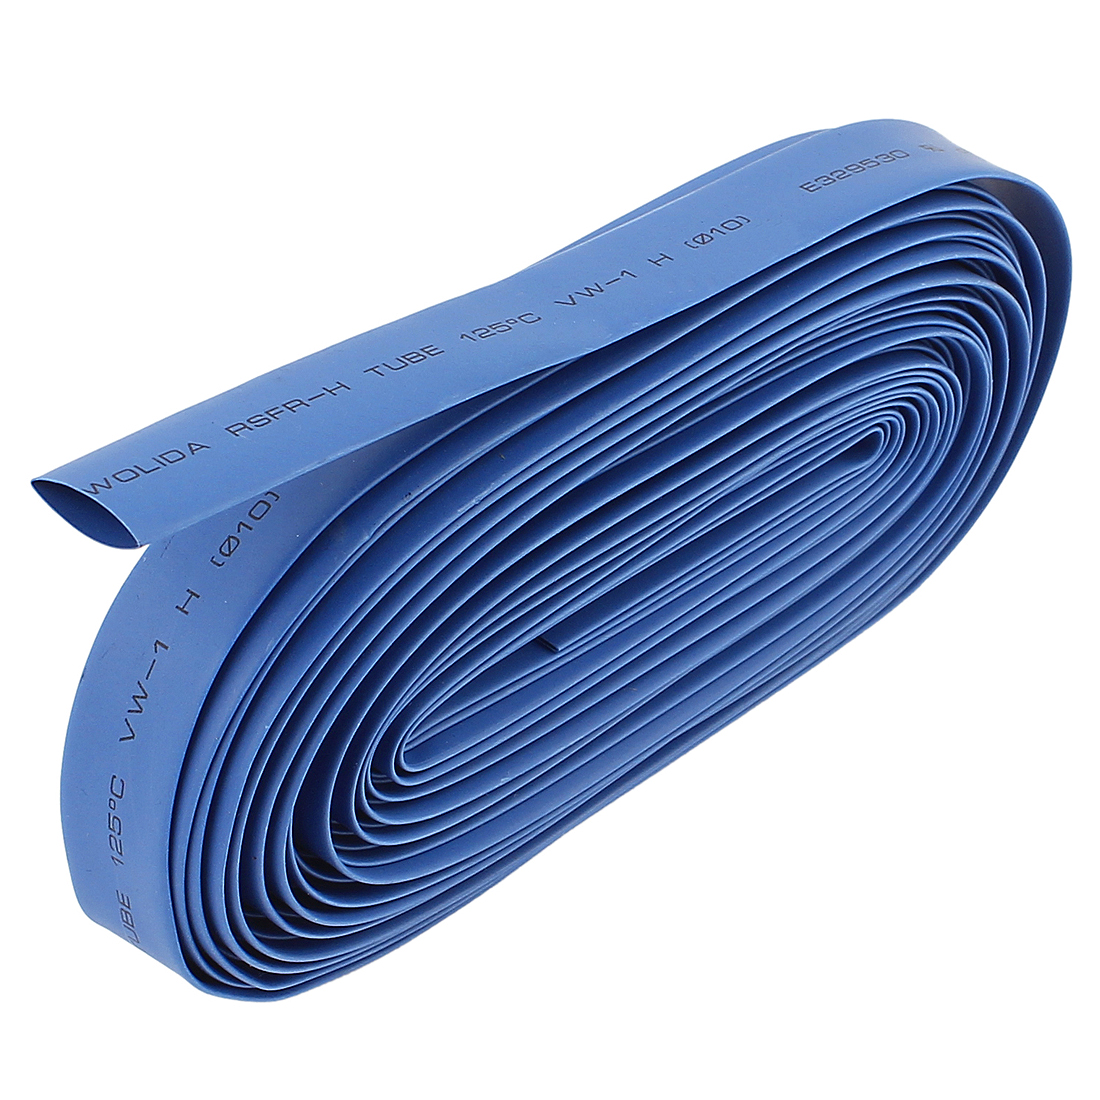 Blue 10mm Dia Polyolefin 2:1 Heat Shrink Tubing Wire Wrap Cable Sleeve 10M 33Ft